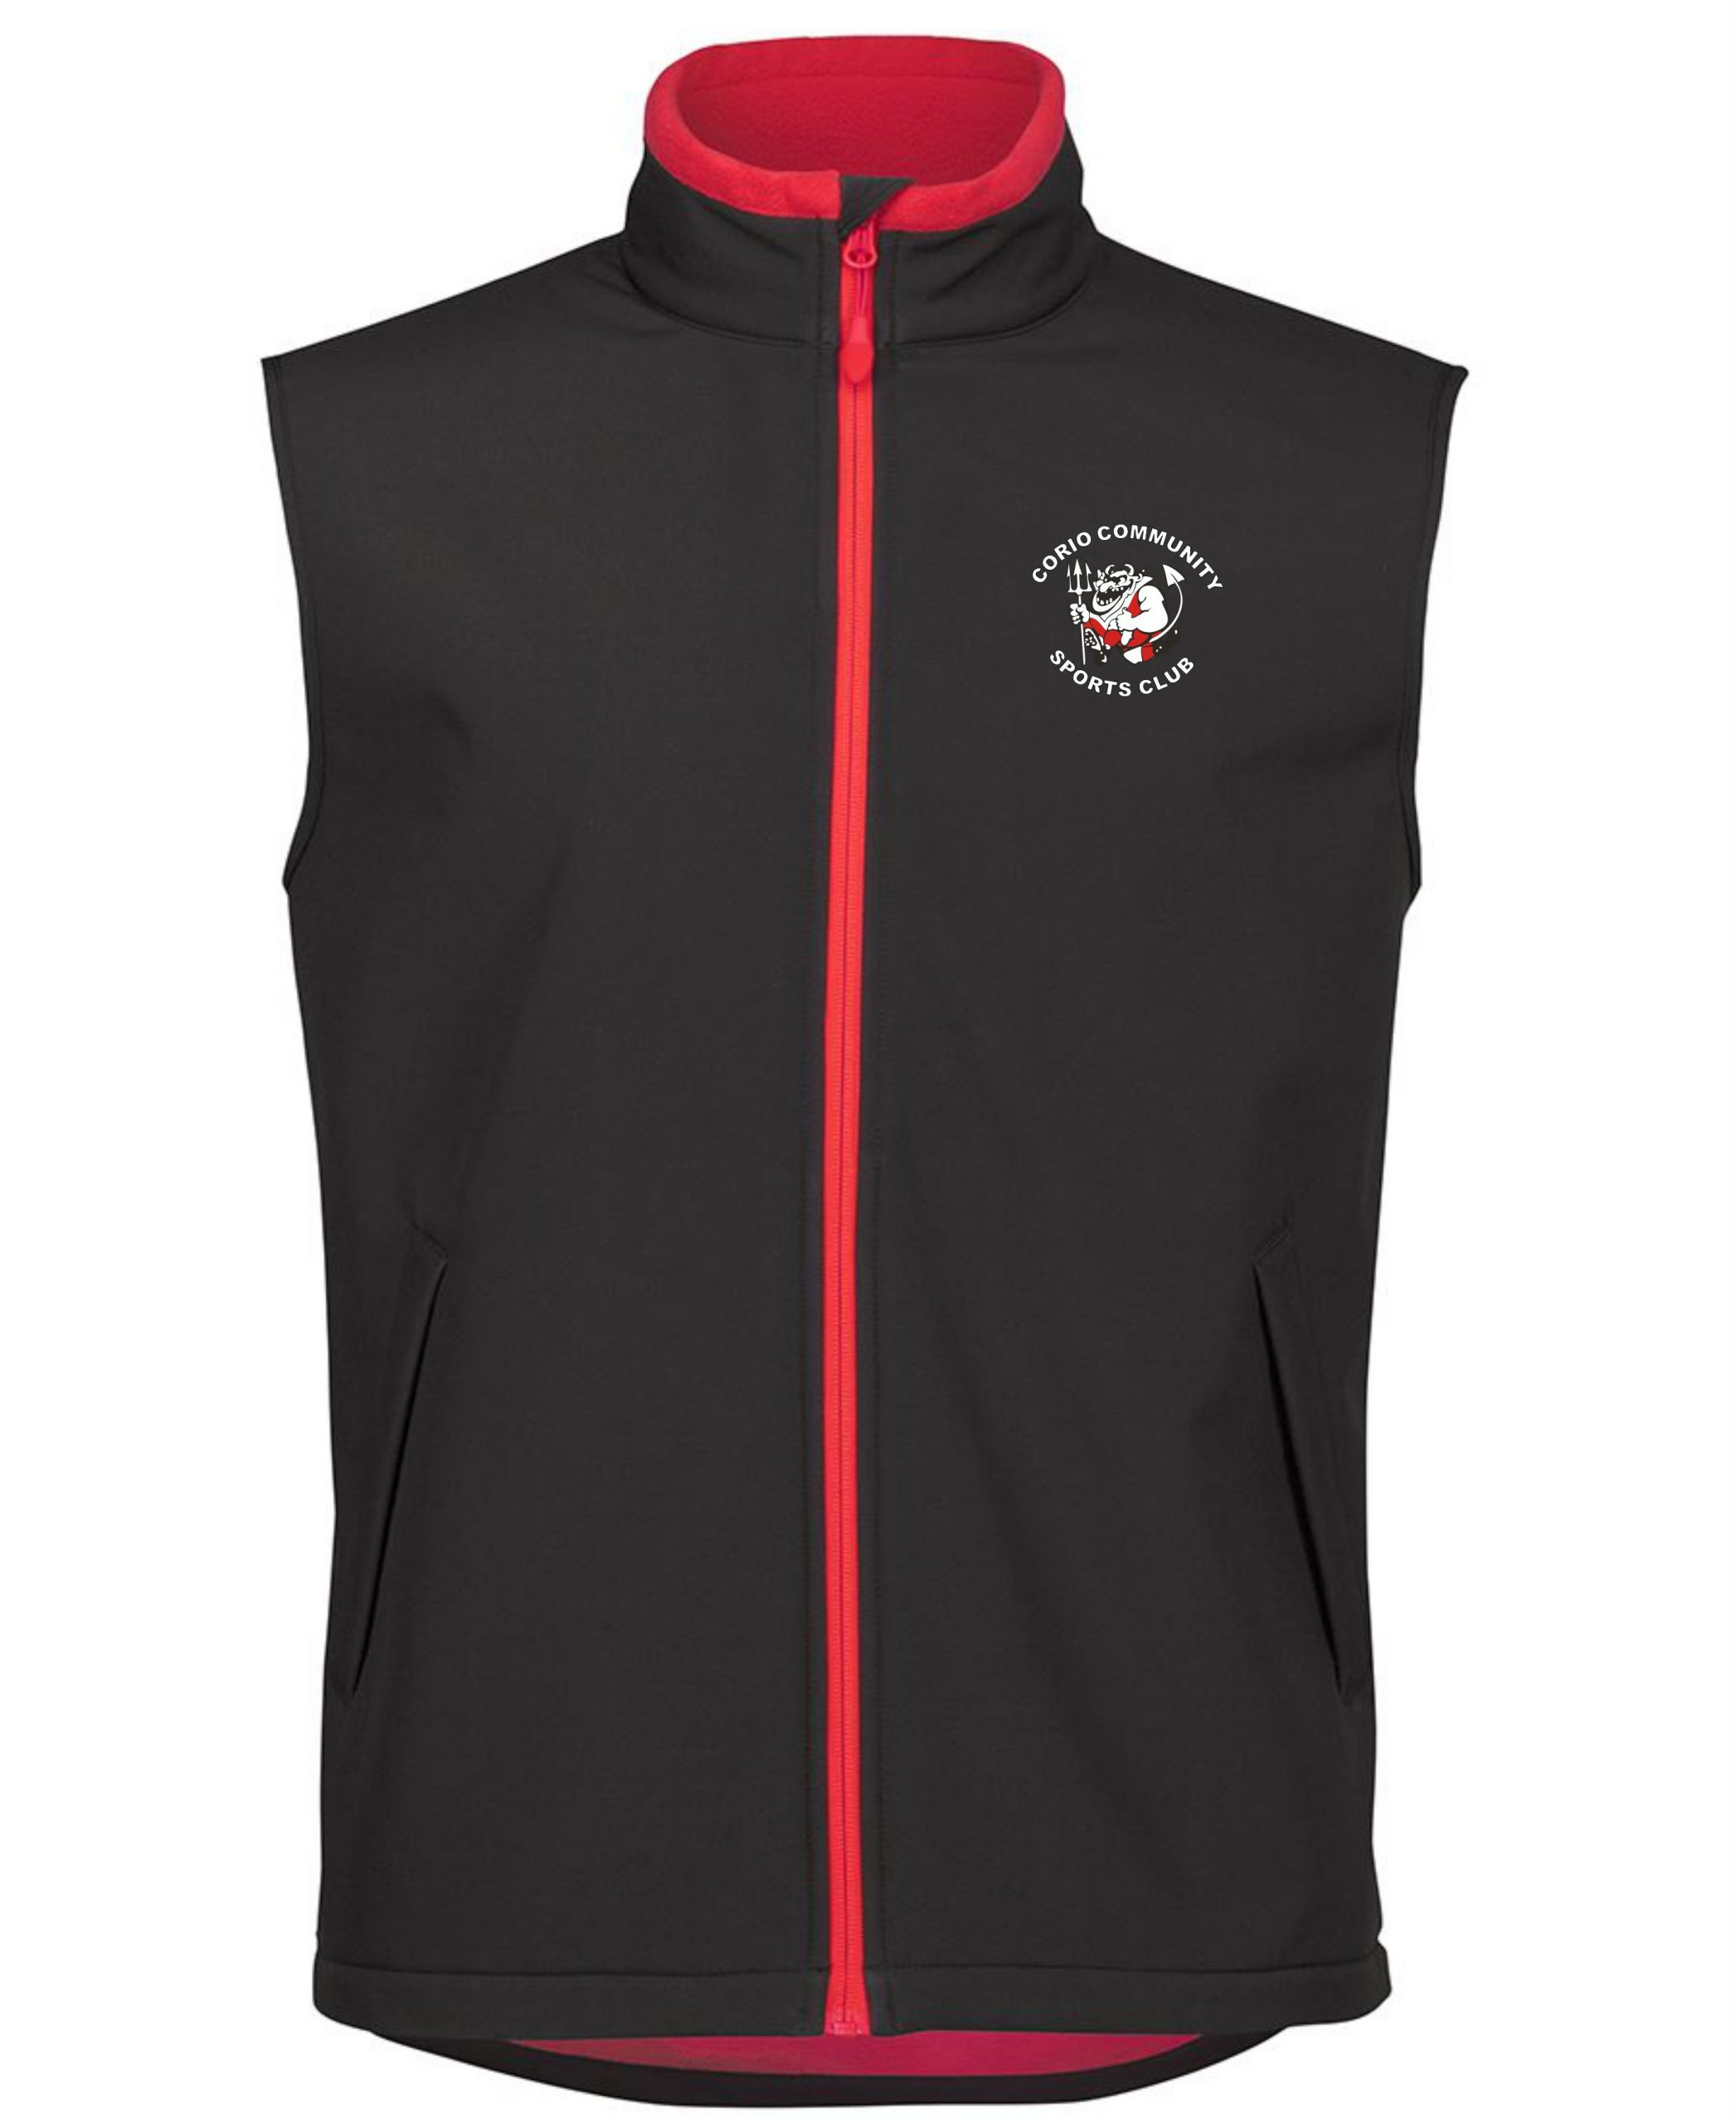 Soft Shell Vest in Black/Red